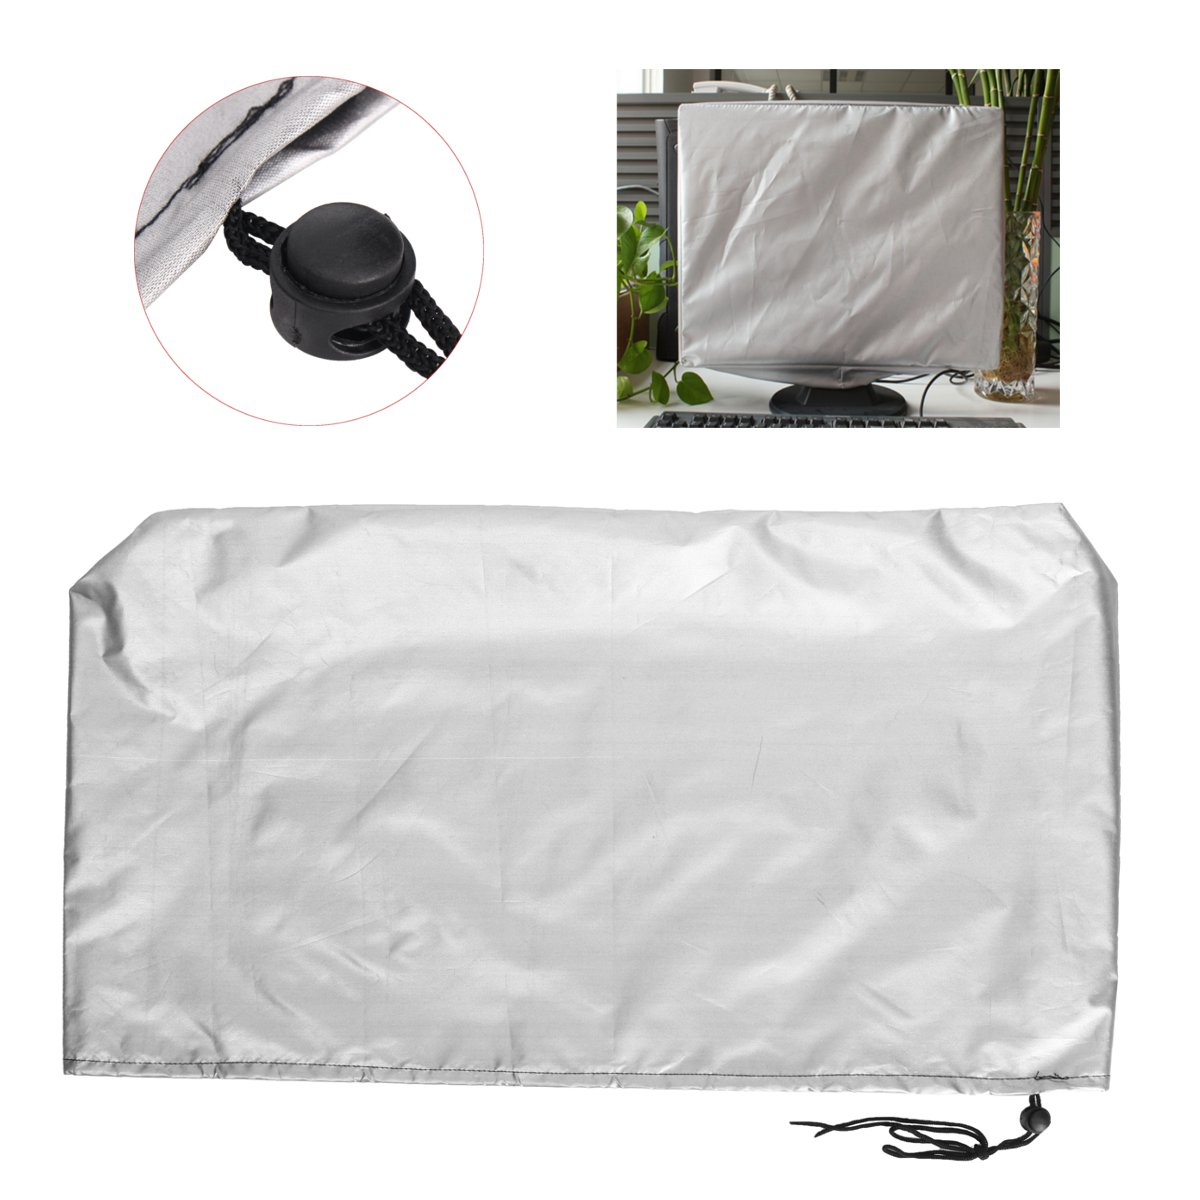 Polyester Computer Tablets Flat Screen Cover Monitor Case Dust Cover PC TV 22 Inch Laptop Protectors Soft Lining 53X35cm